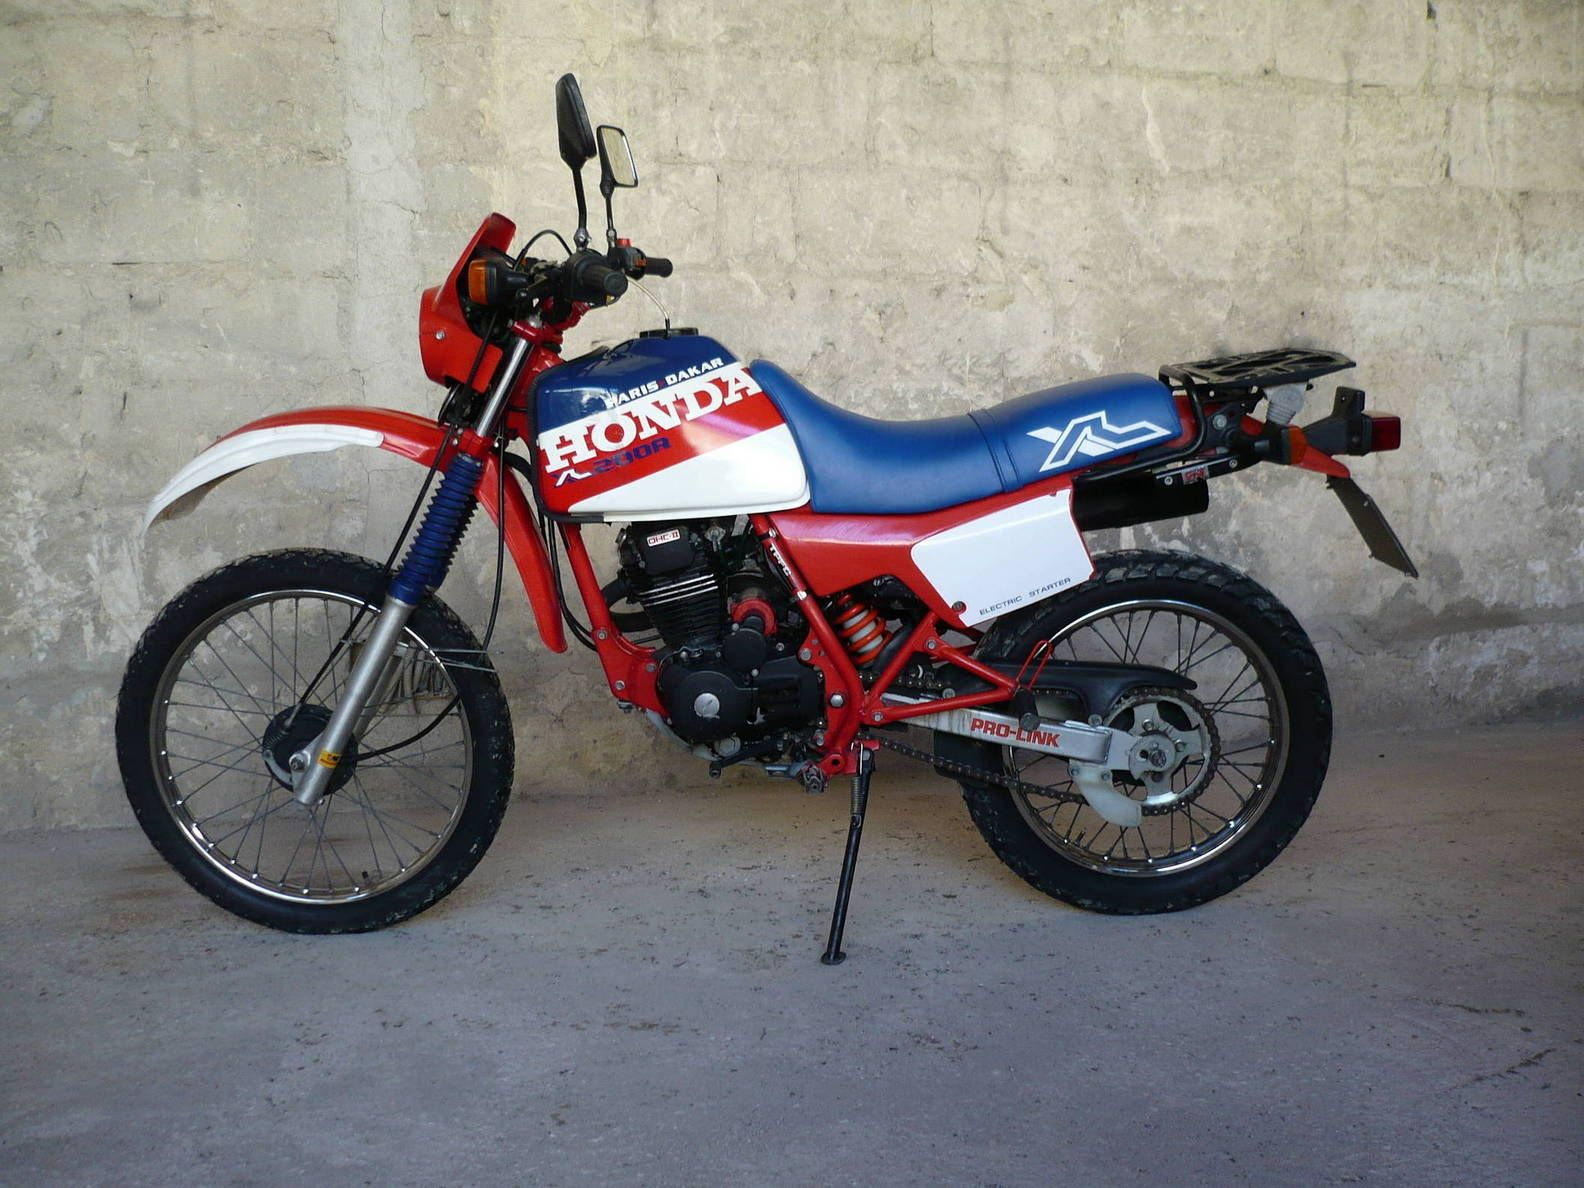 honda xl 125 paris dakar honda xl pinterest honda. Black Bedroom Furniture Sets. Home Design Ideas